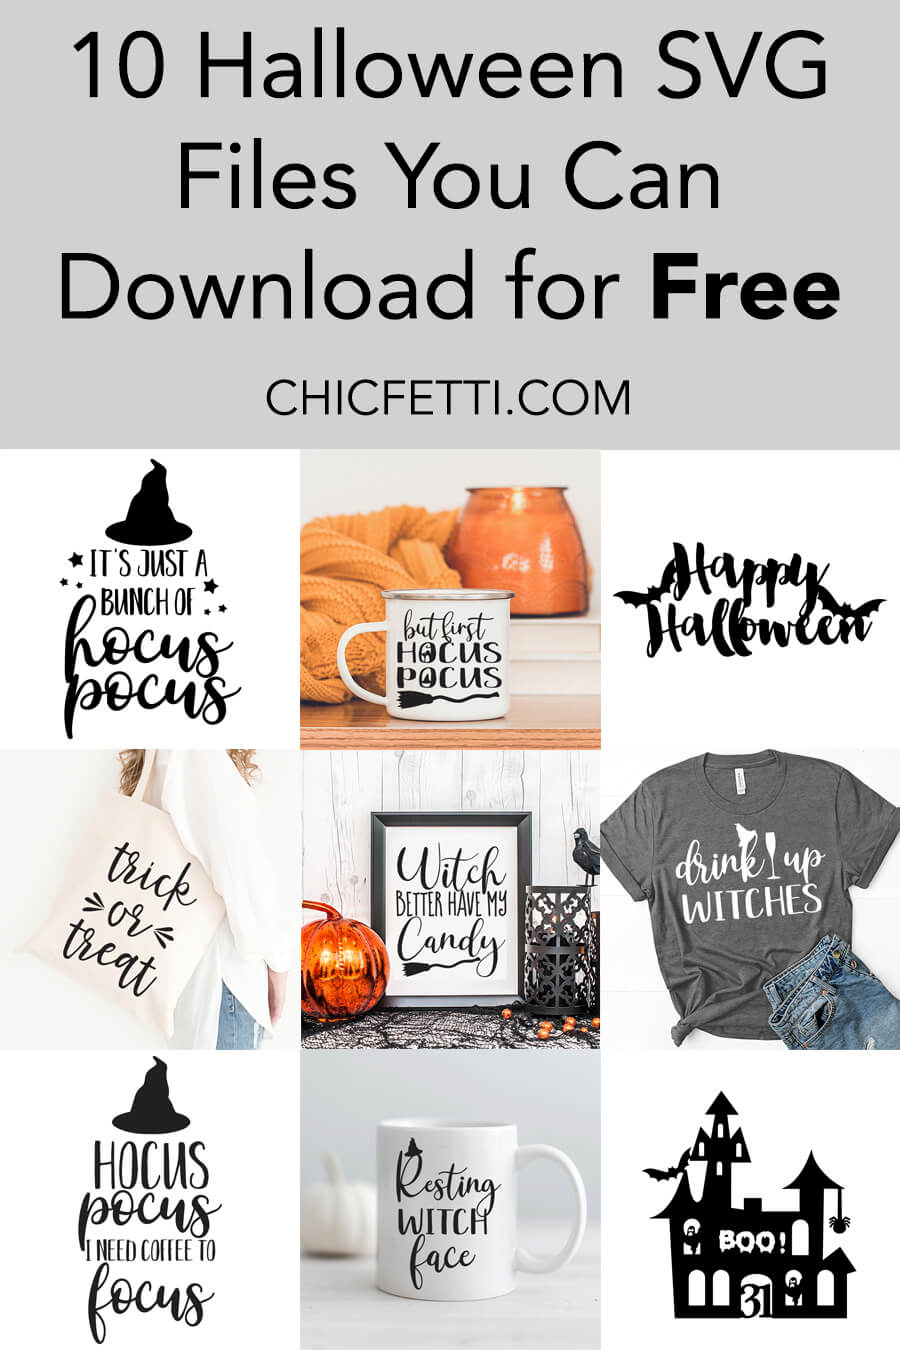 10 Halloween SVG Files You Can Download for Free - Use these Free SVG files to make Halloween crafts or Halloween home decor. They are free to download and there are 10 files to choose from. #svg #svgfiles #freesvg #halloween #halloweenideas #halloweencrafts #cricut #silhouettecameo